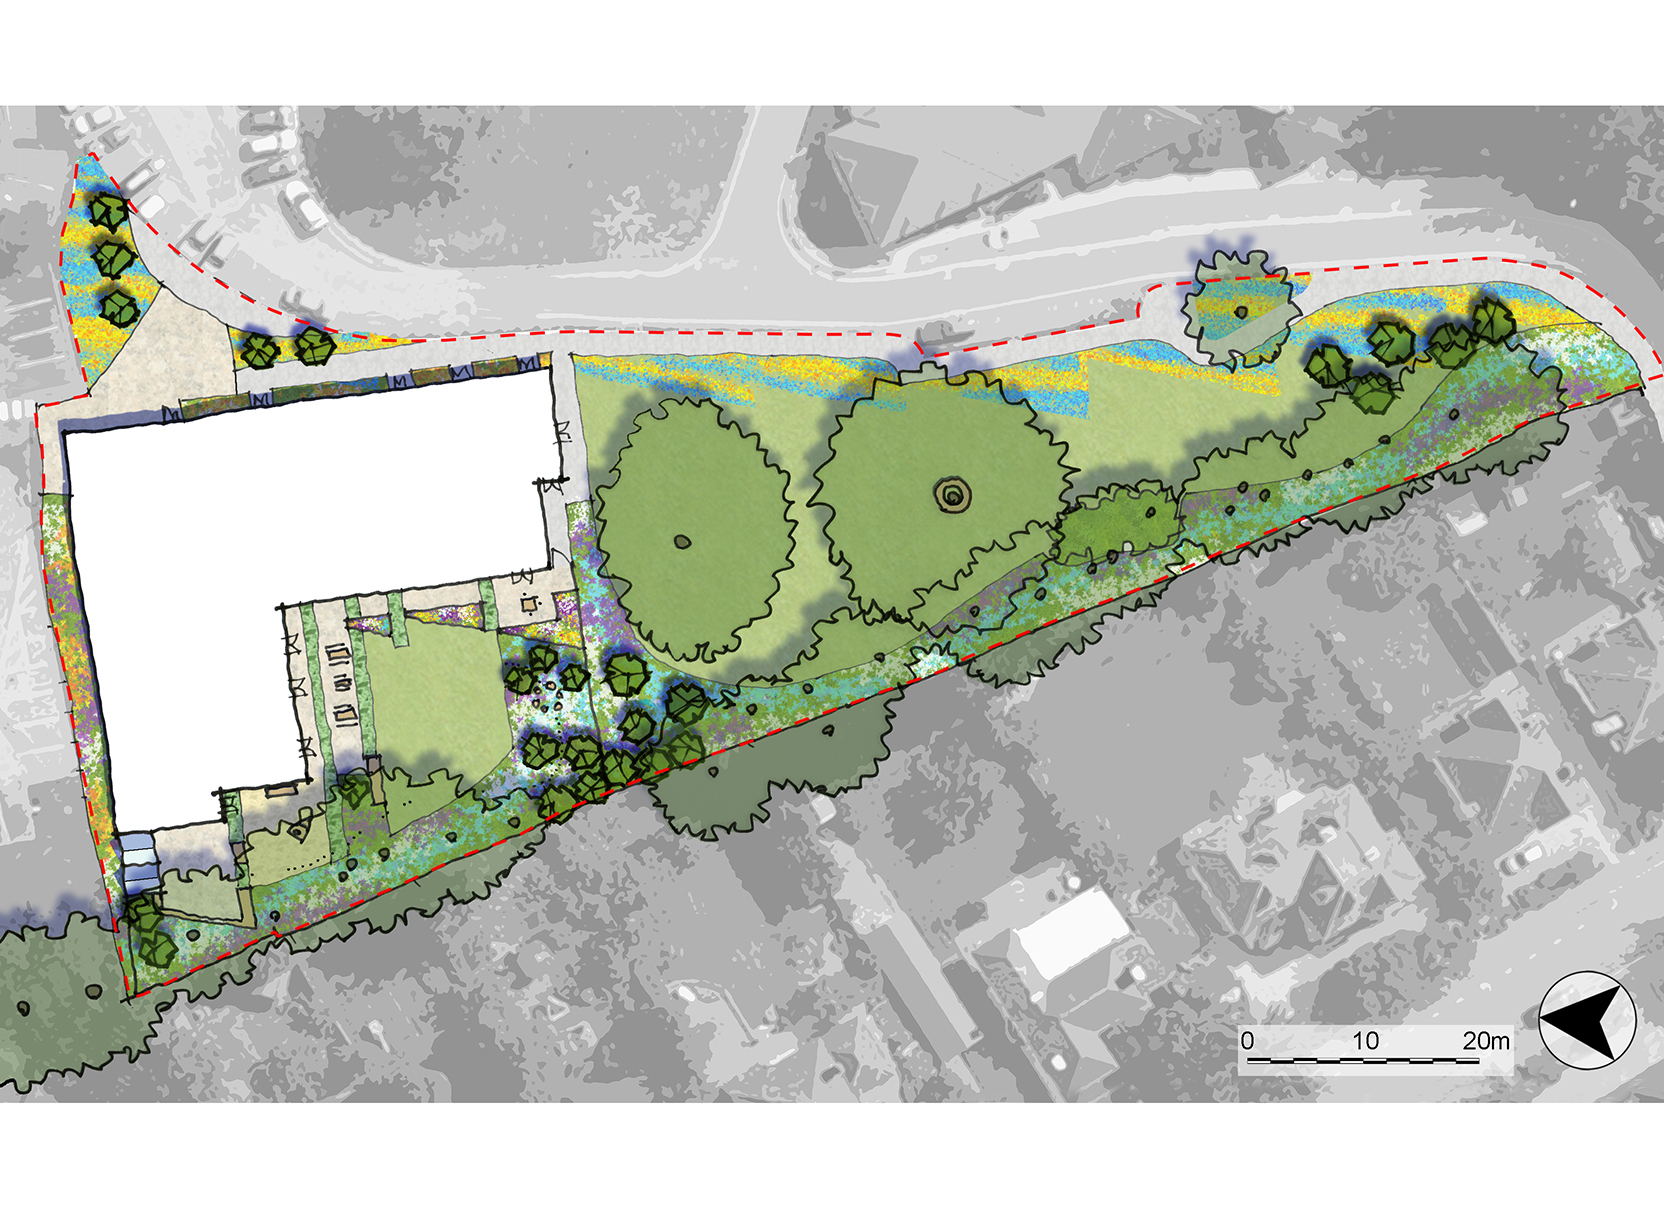 Plan of overall site with children's garden and a public open space